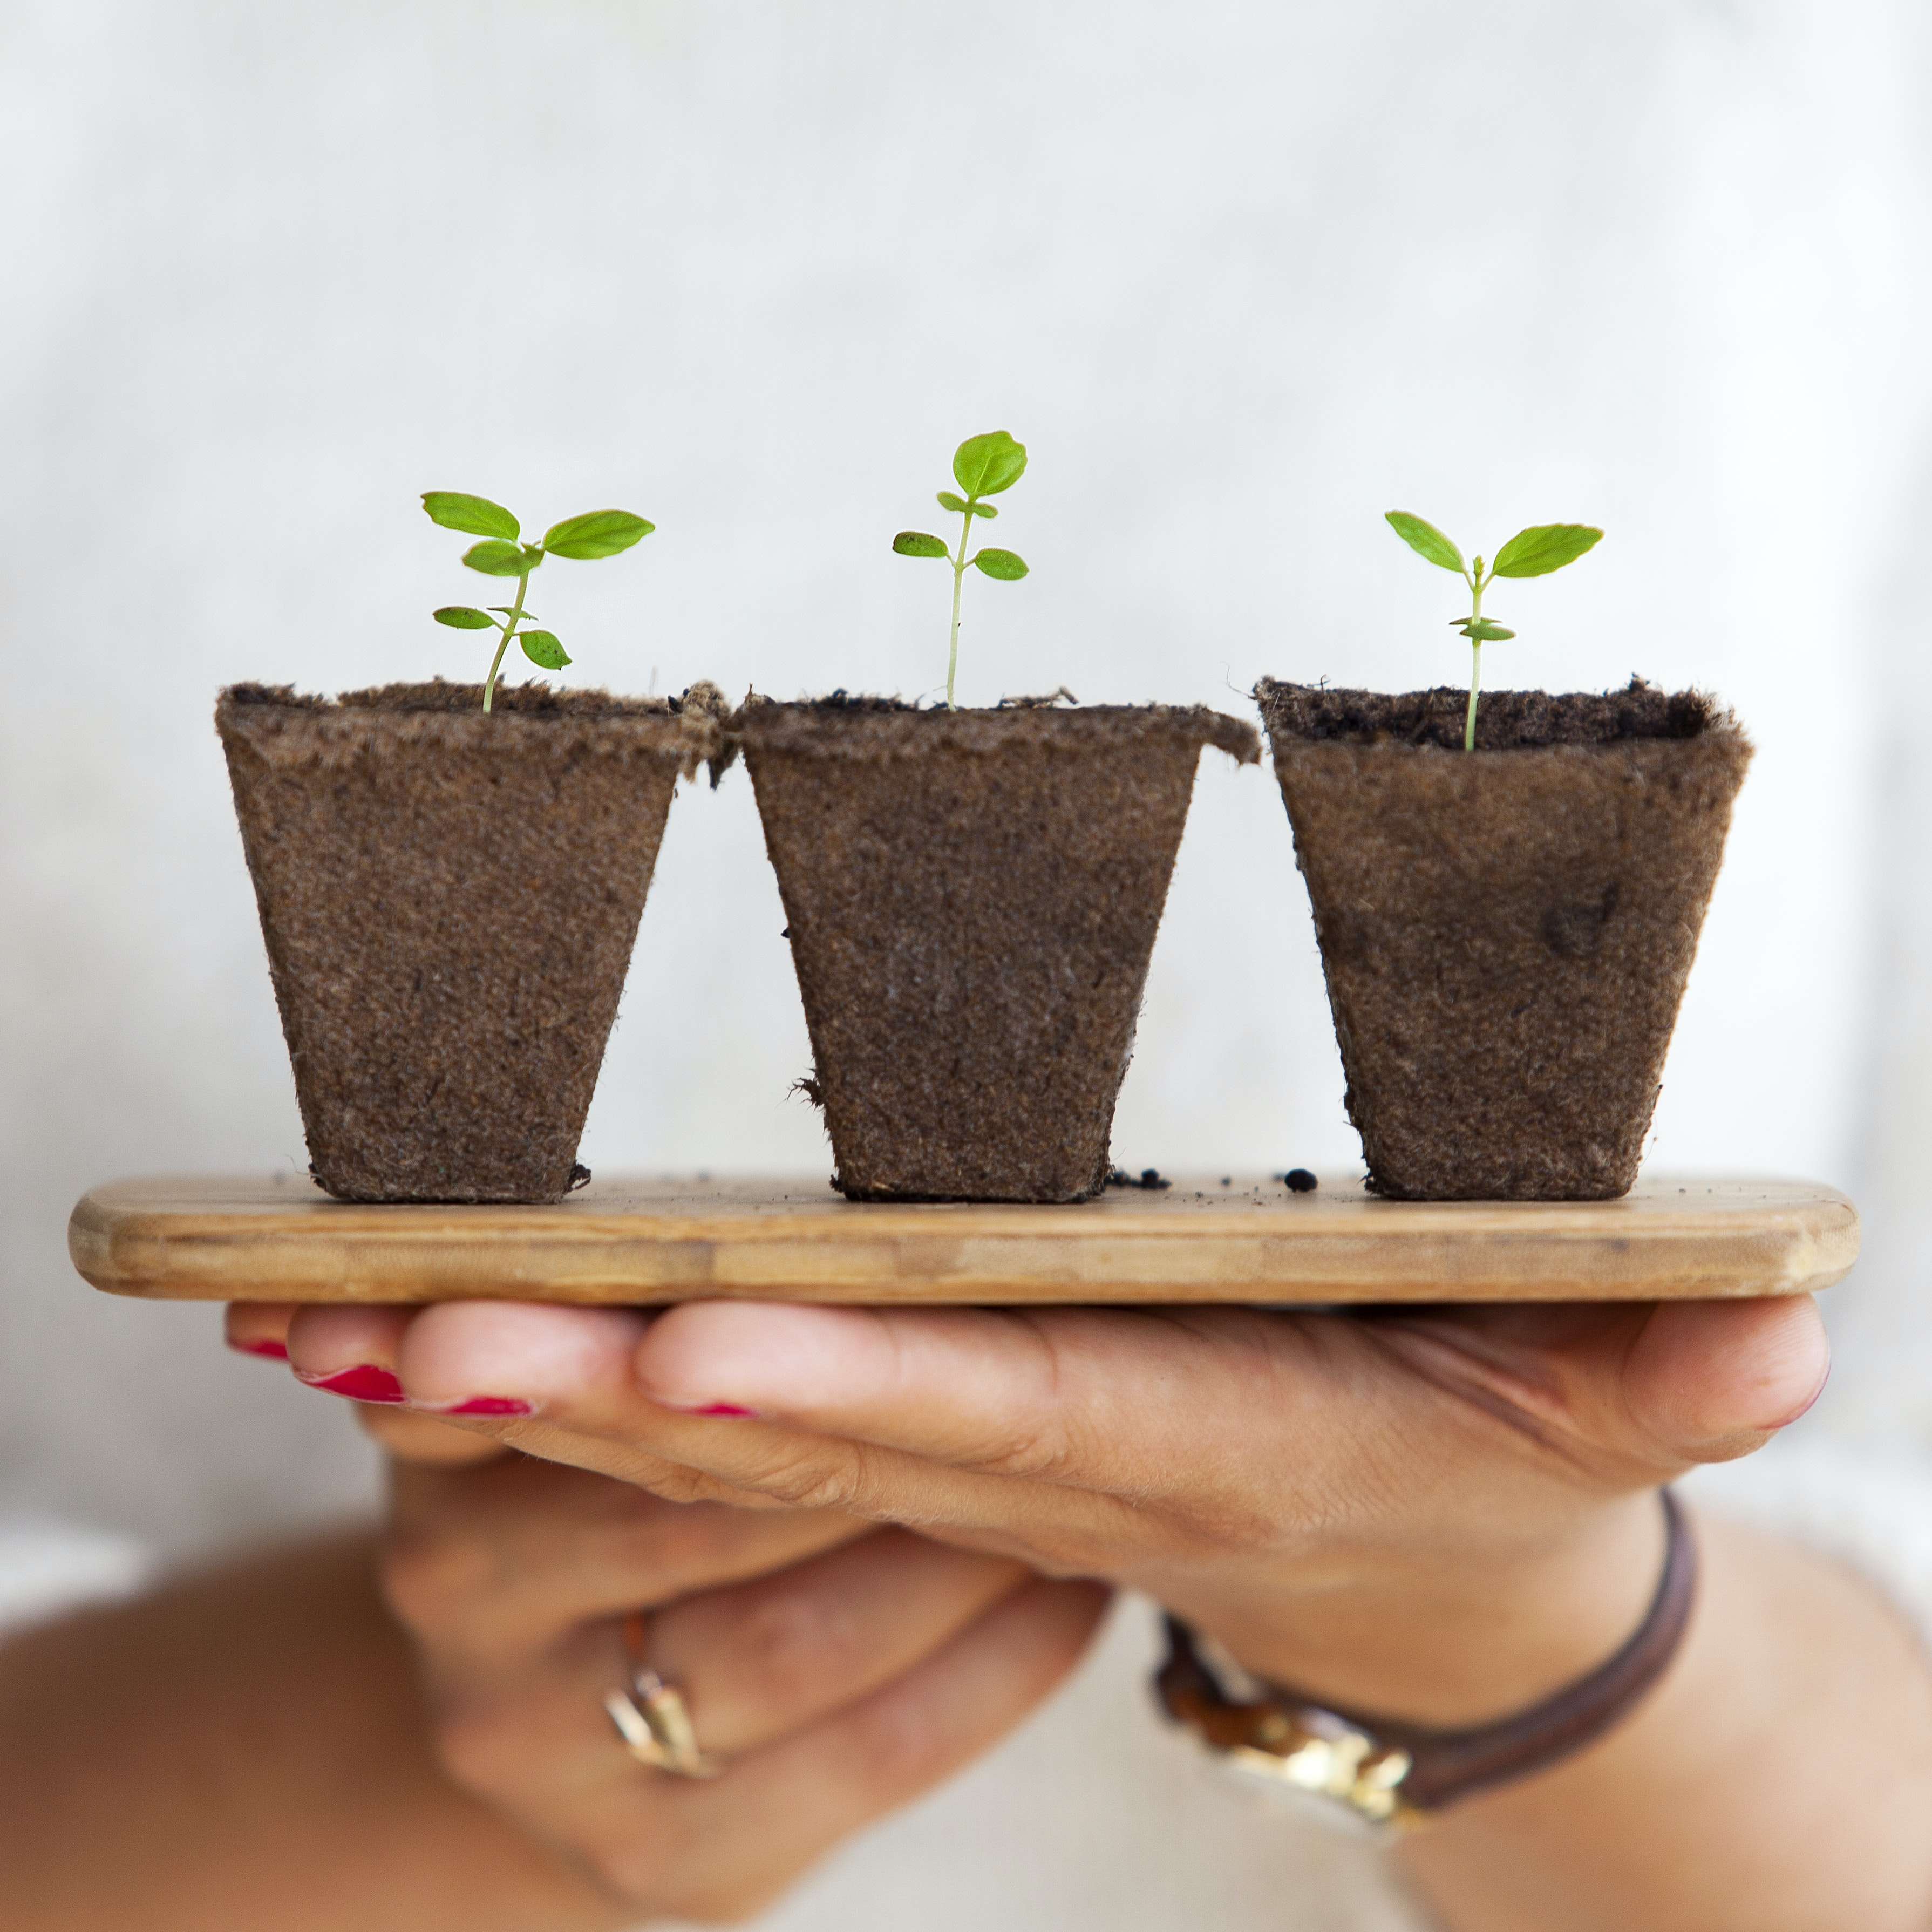 A person holding a wooden board with three small plants taken out of their pots